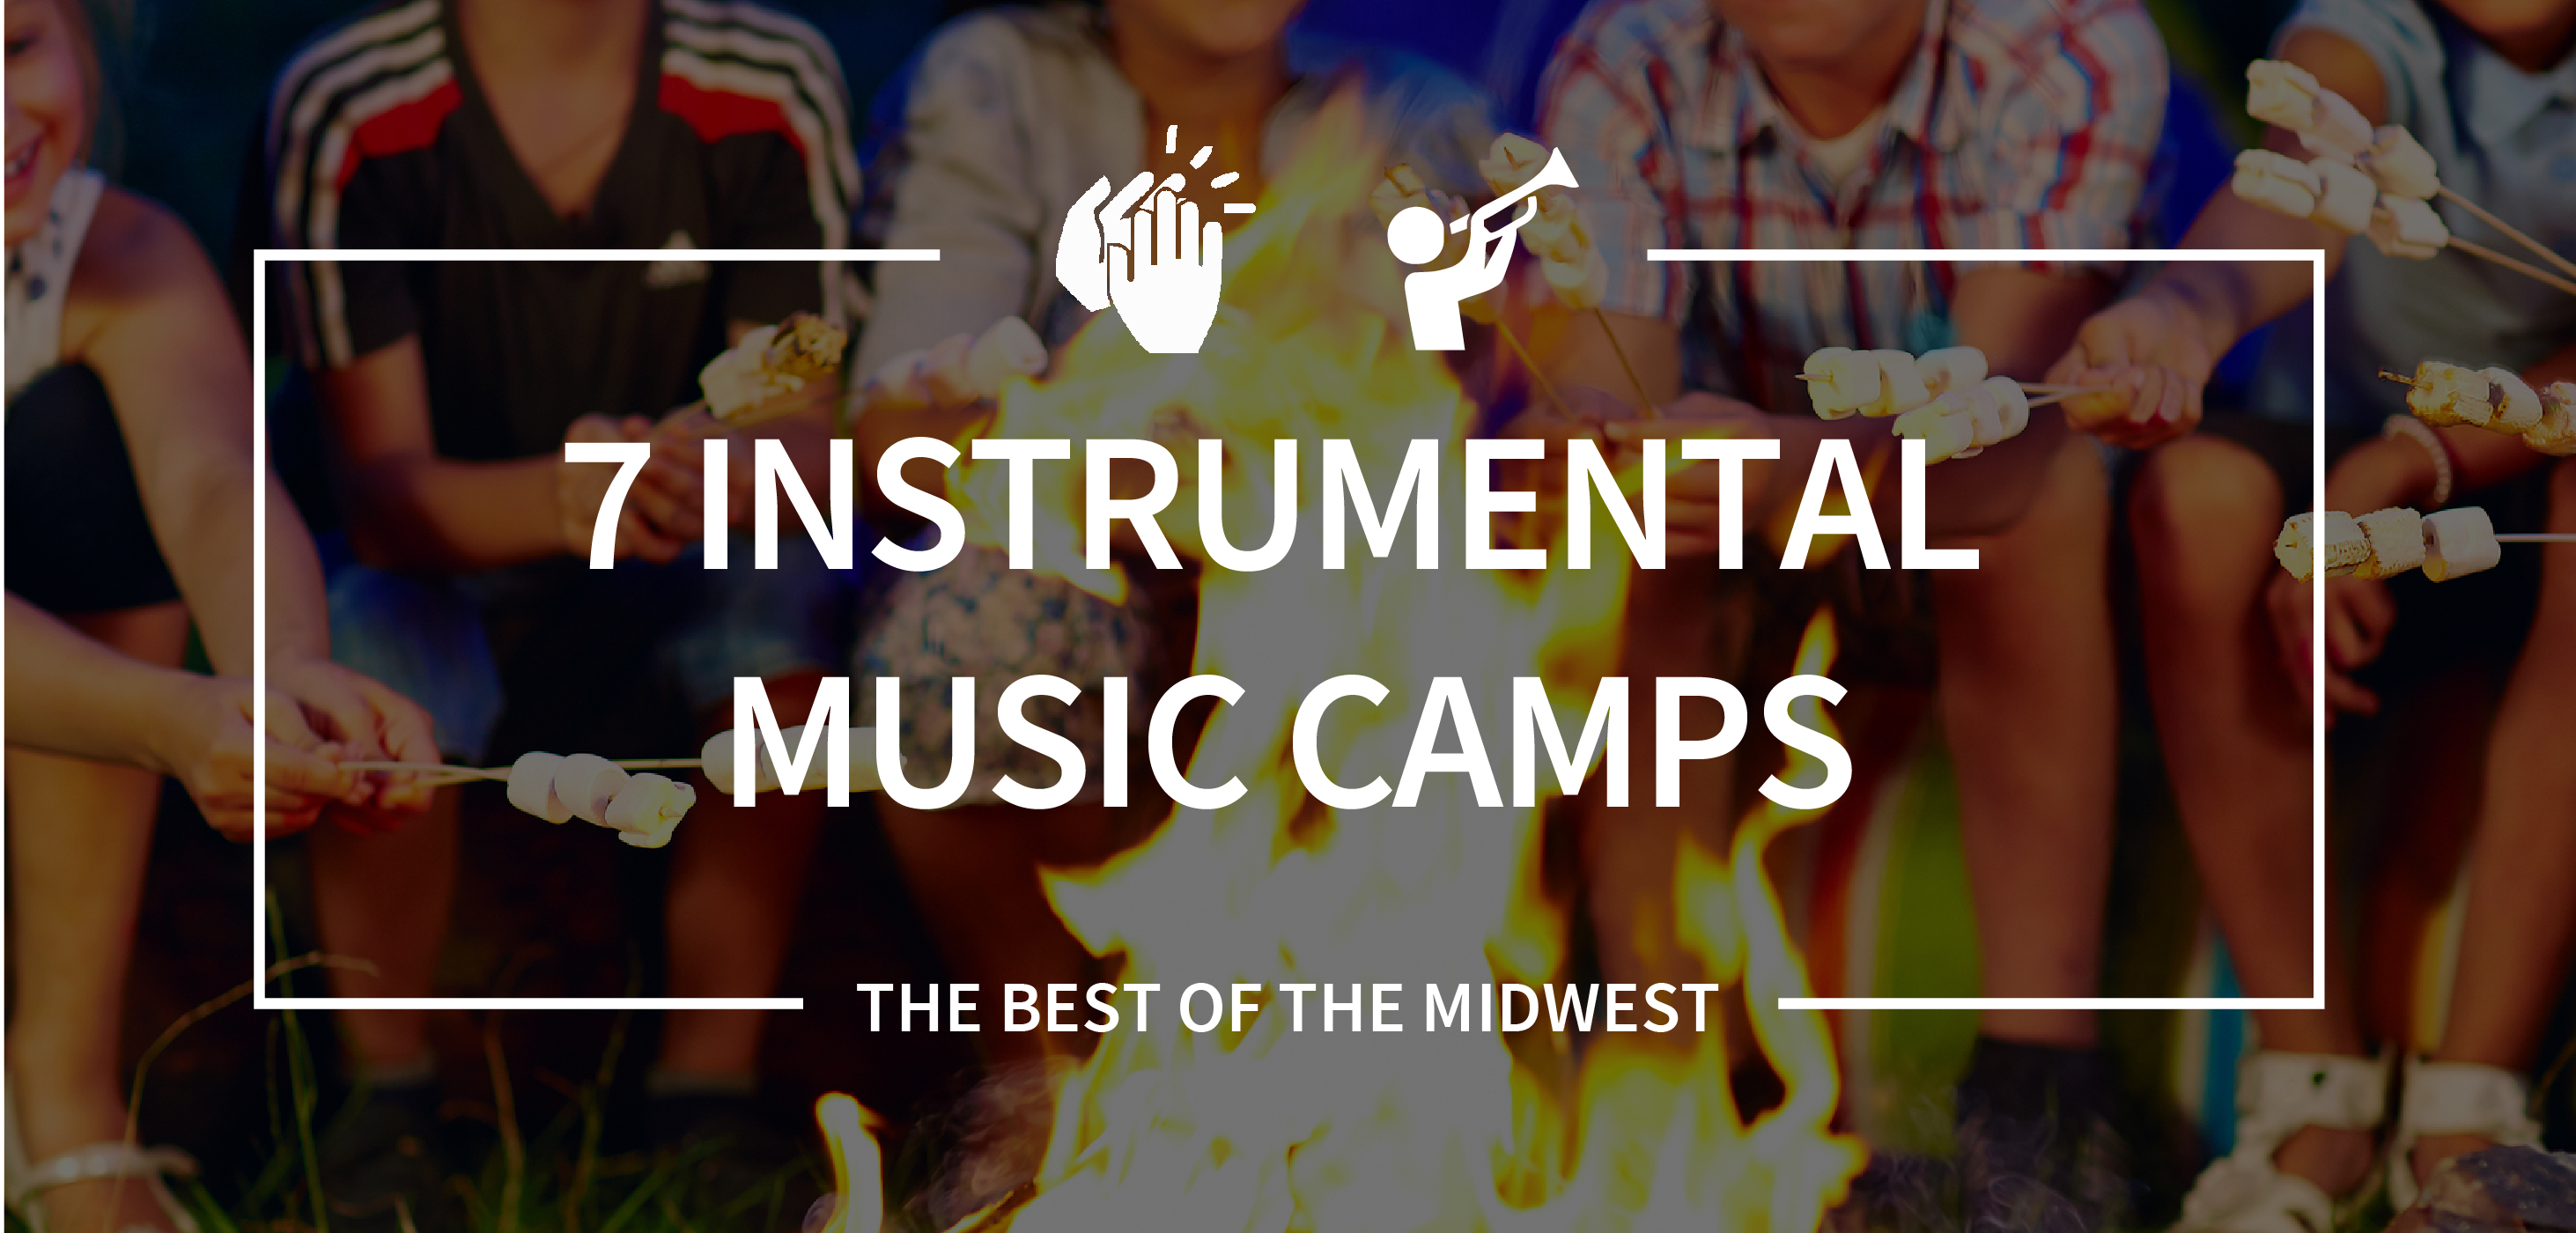 The 7 Best Instrumental Music Camps in the Midwest